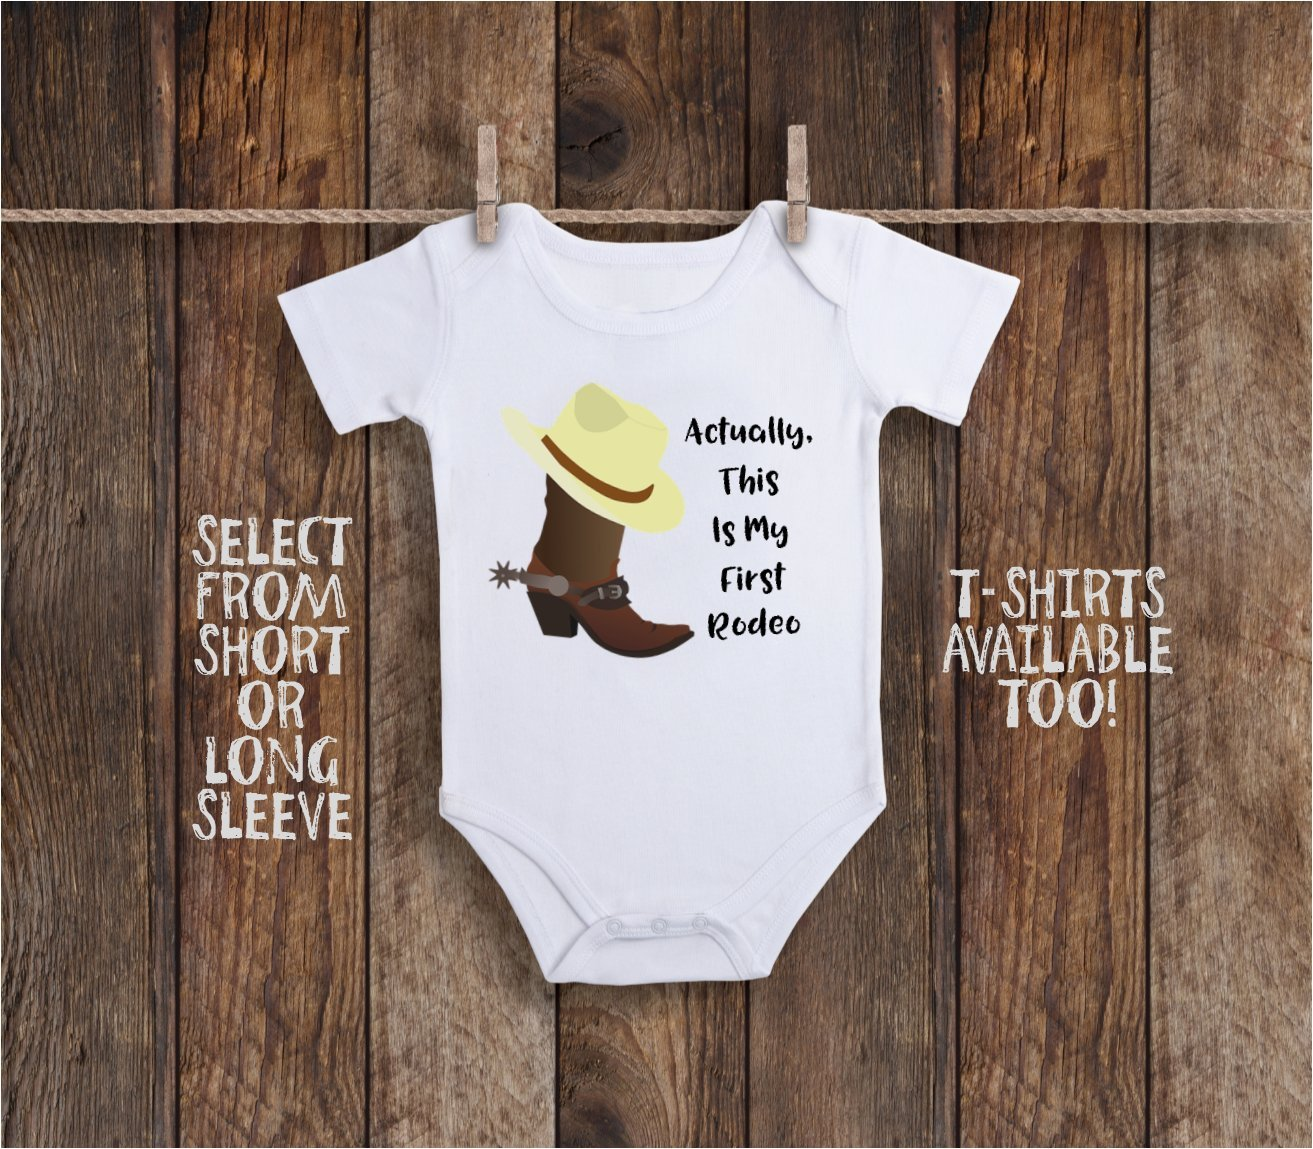 My First Rodeo Cowgirl or Cowboy Toddler Kids Tee Shirt or Baby Bodysuit